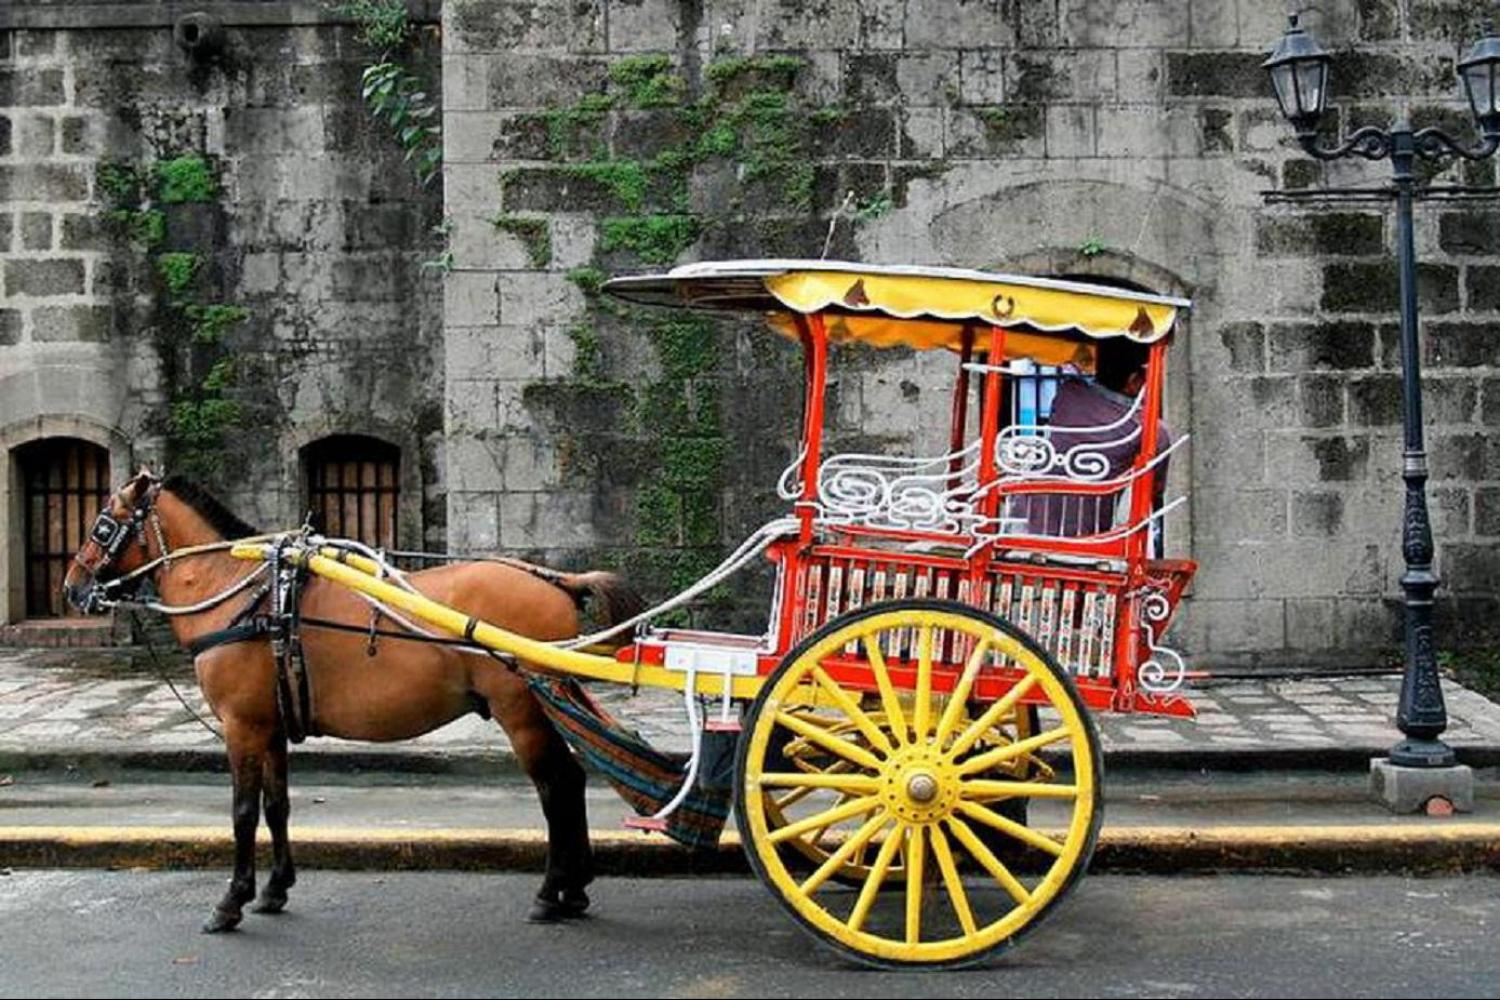 transportation in the philippines In the philippines, there is an array of transportation, auspicious or otherwise, for every traveler to experience at times, that not-so-pleasant ride is the only way to get to your destination, so instead of whining, it's best to exercise your optimism and make the most of the journey.